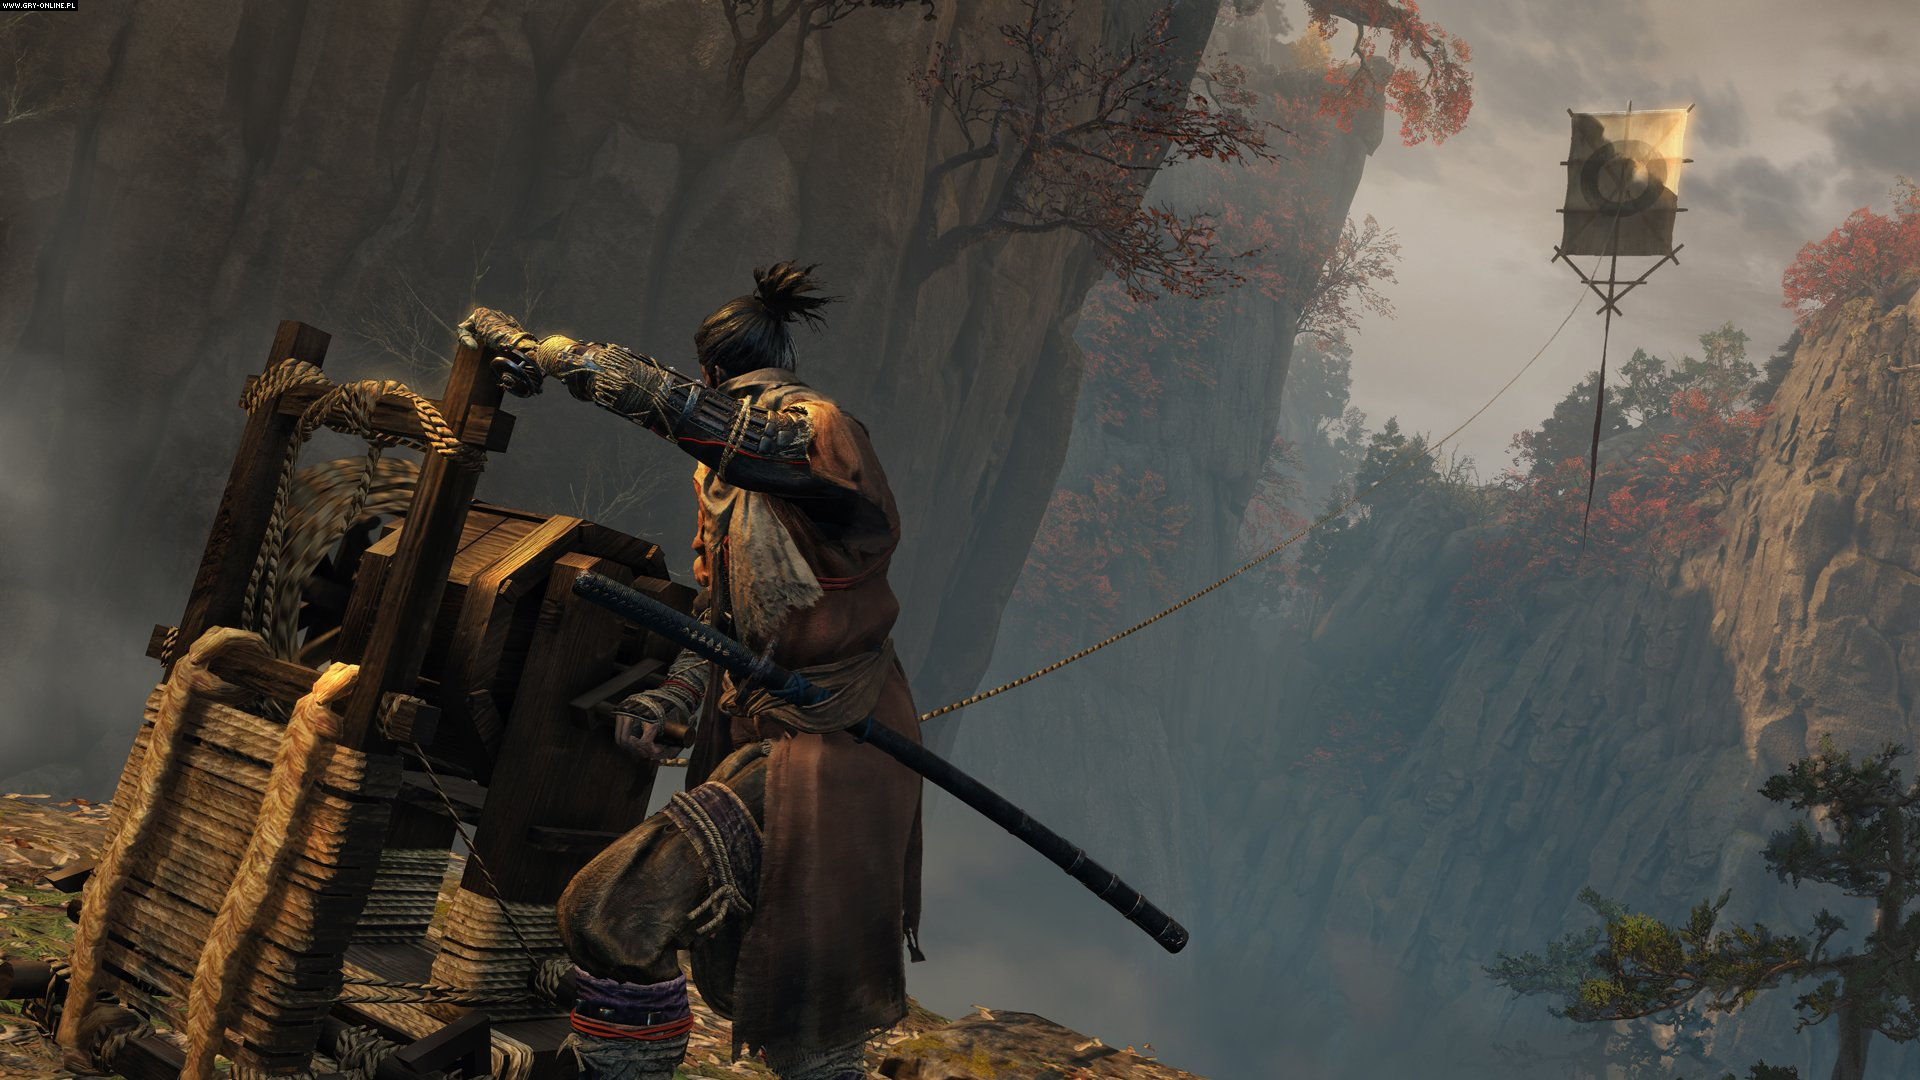 Sekiro: Shadows Die Twice PC, PS4, XONE Gry Screen 6/29, FromSoftware, Activision Blizzard